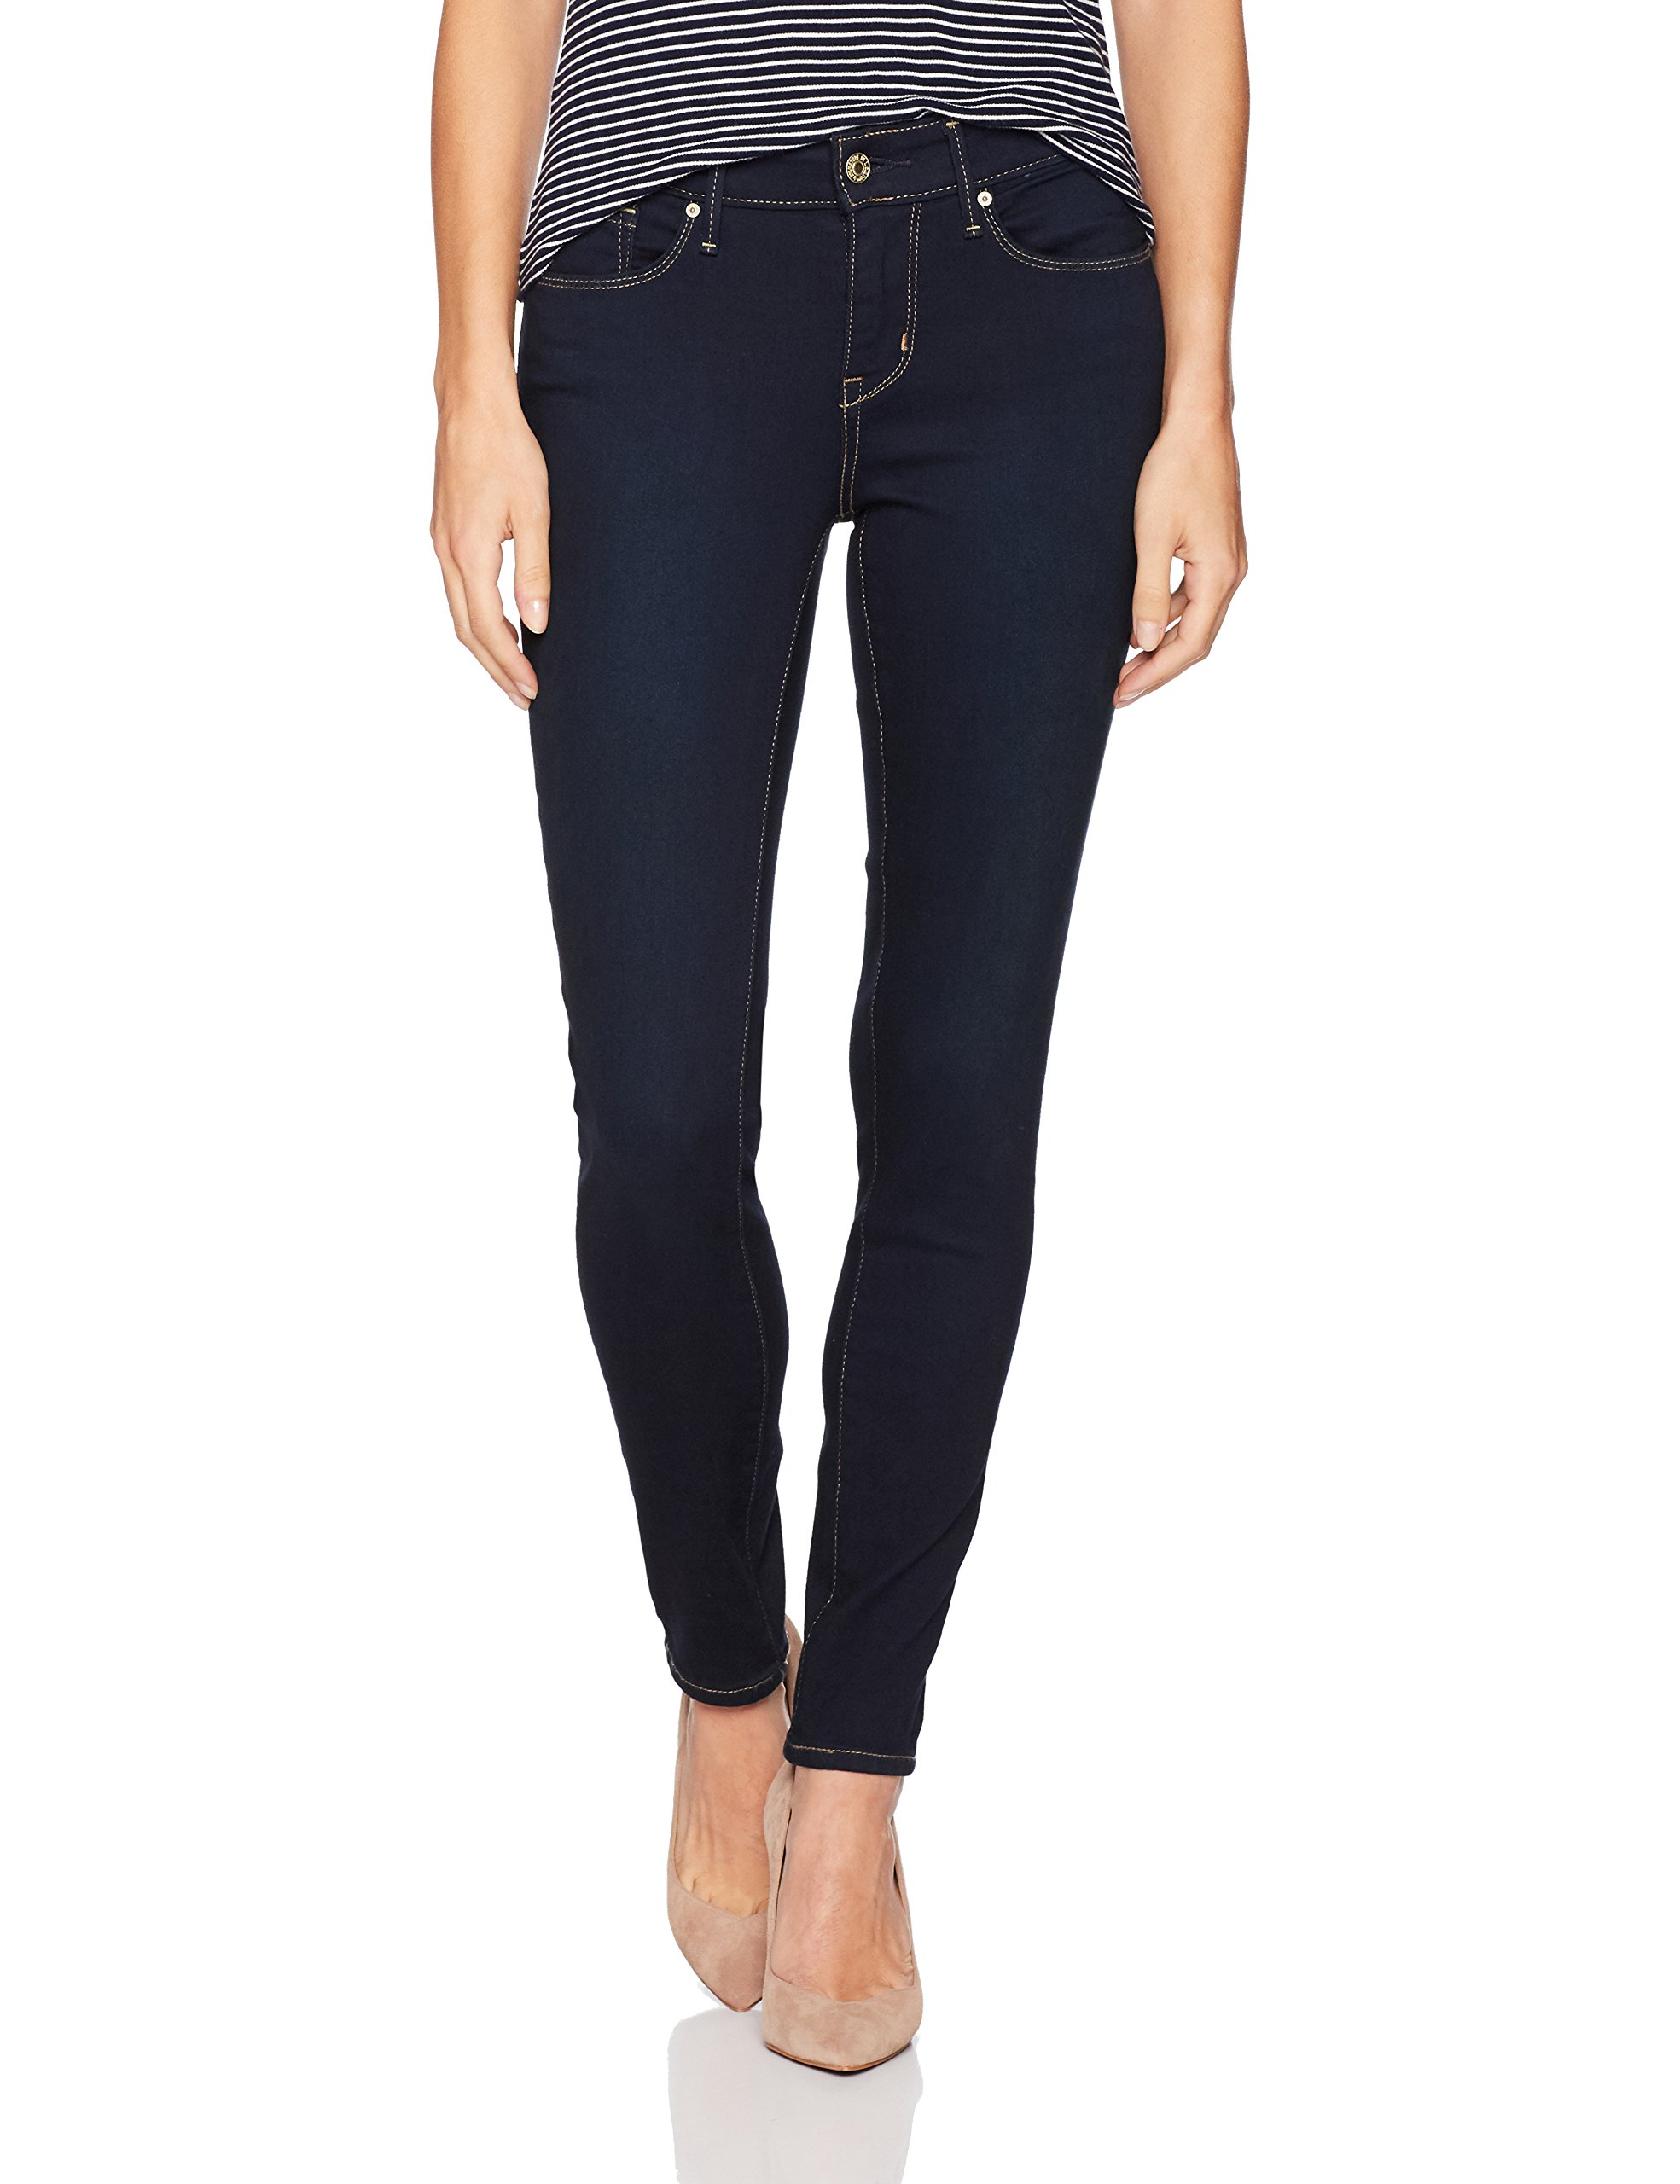 Signature by Levi Strauss & Co. Gold Label Women's Modern Skinny Jeans, Mascara, 14 Medium